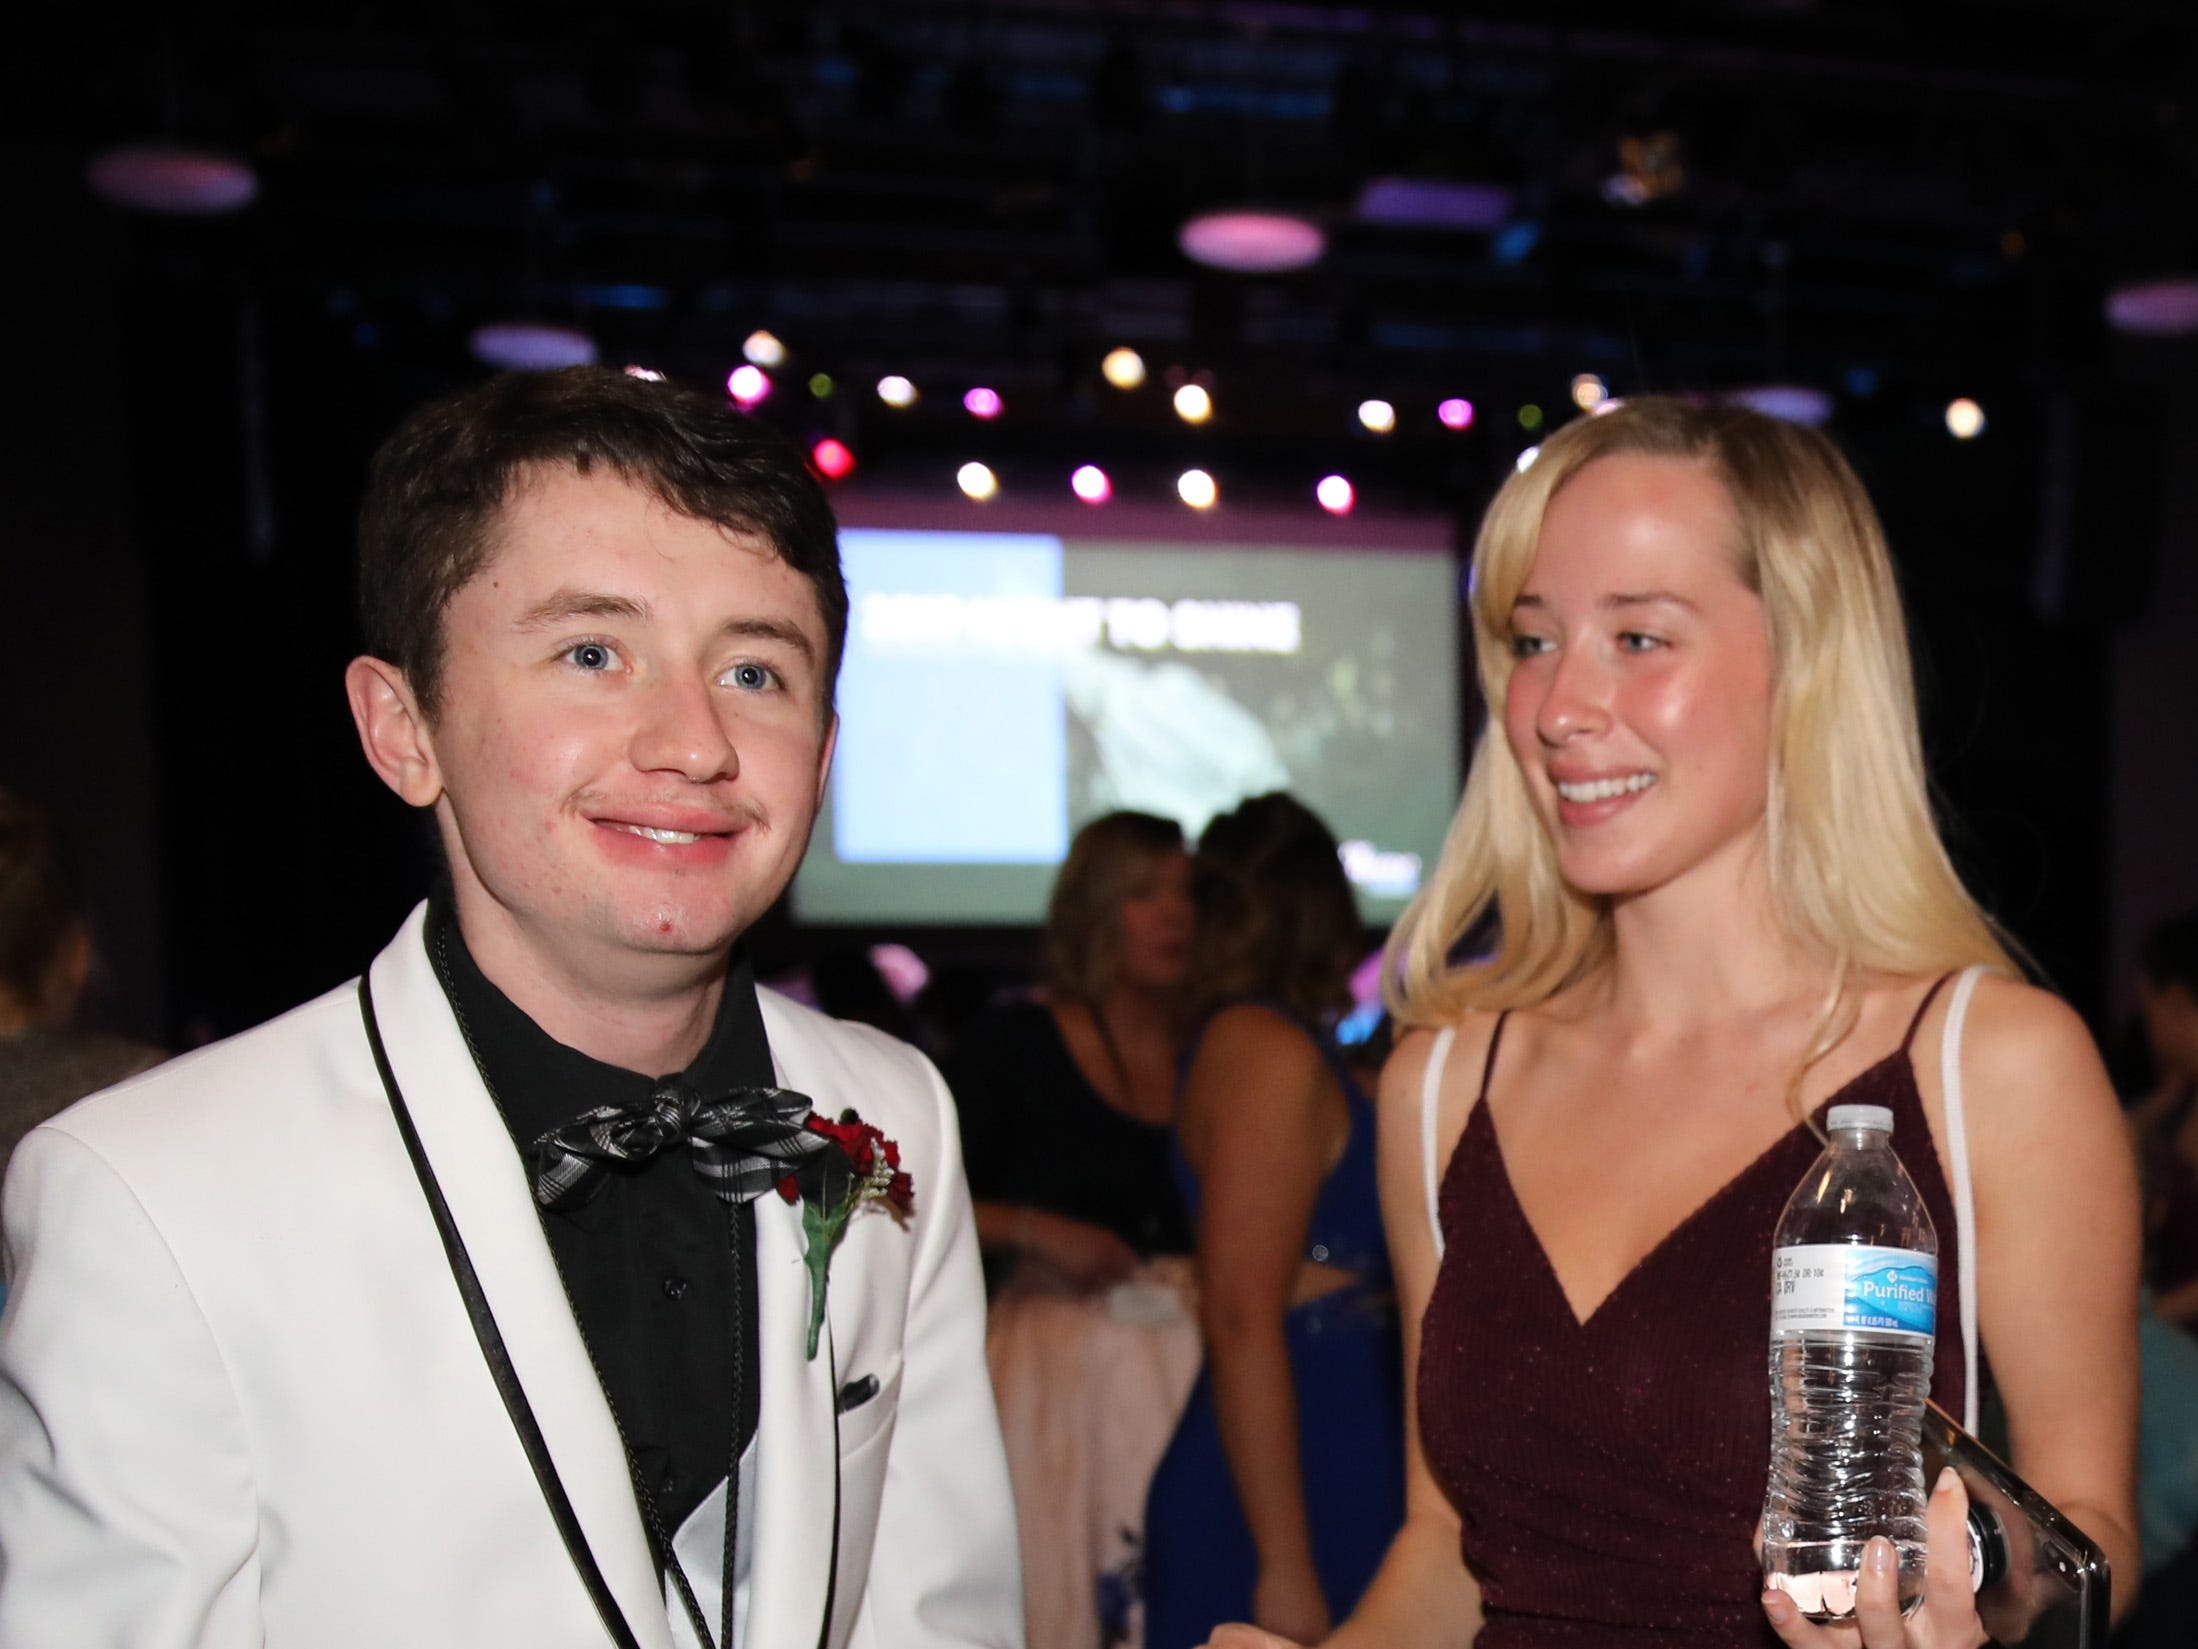 Will Obranovic and Madi Day dance during the Night to Shine event at Prairie Ridge Church in Ankeny on Friday, Feb. 8, 2019. Sponsored by the Tim Tebow Foundation, the event for adults with special needs features a prom-like atmosphere with dancing, limo rides, food and more.